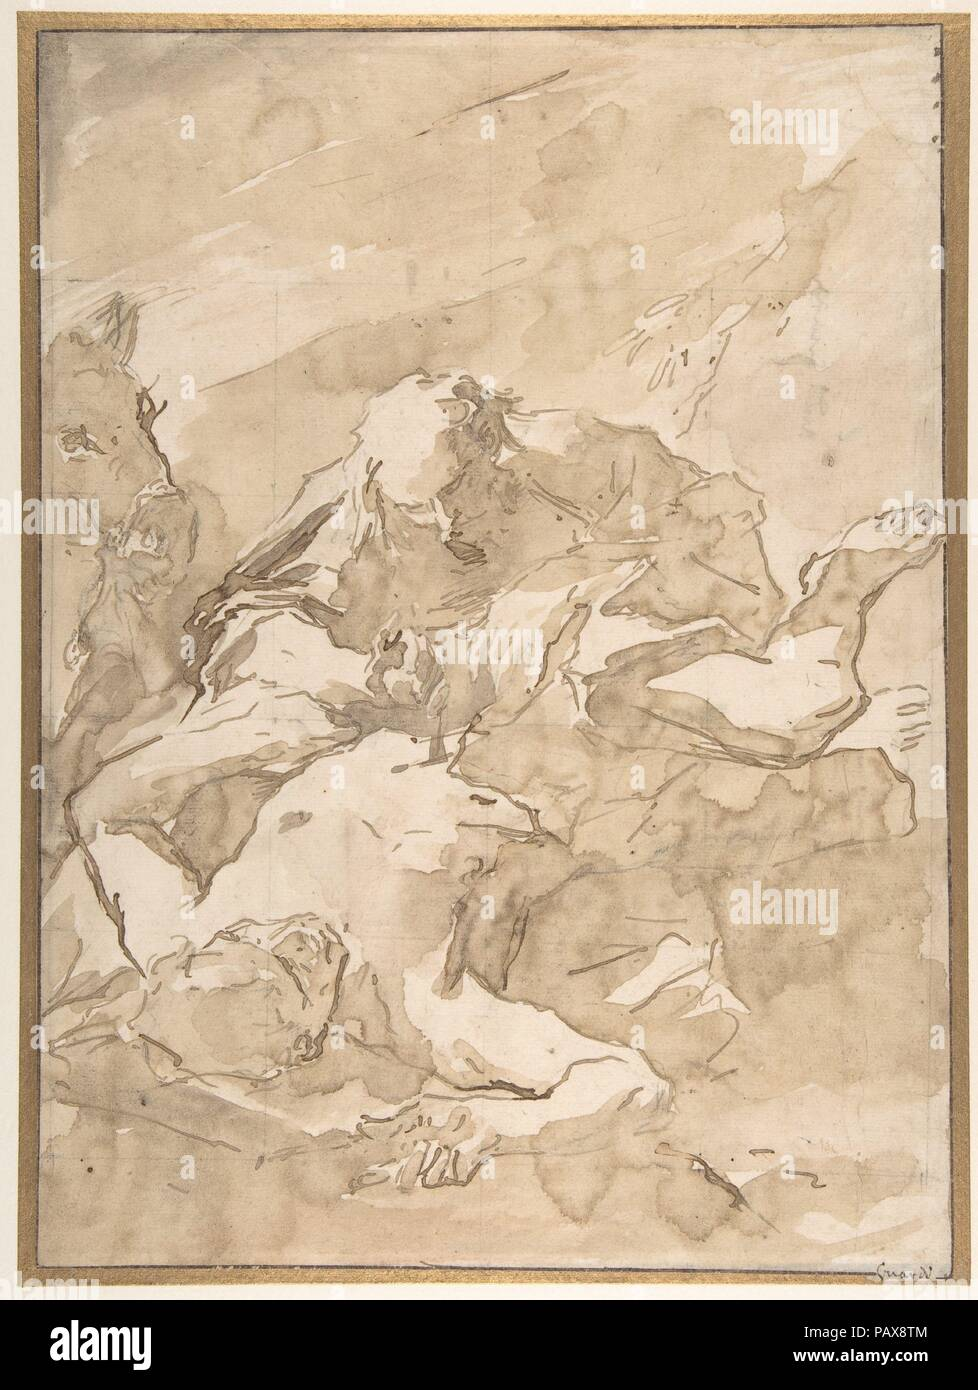 The Good Samaritan. Artist: Giovanni Antonio Guardi (Italian, Vienna 1699-1766  Venice). Dimensions: 13 7/16 x 9 7/8in. (34.2 x 25.1cm). Date: 1699-1766.